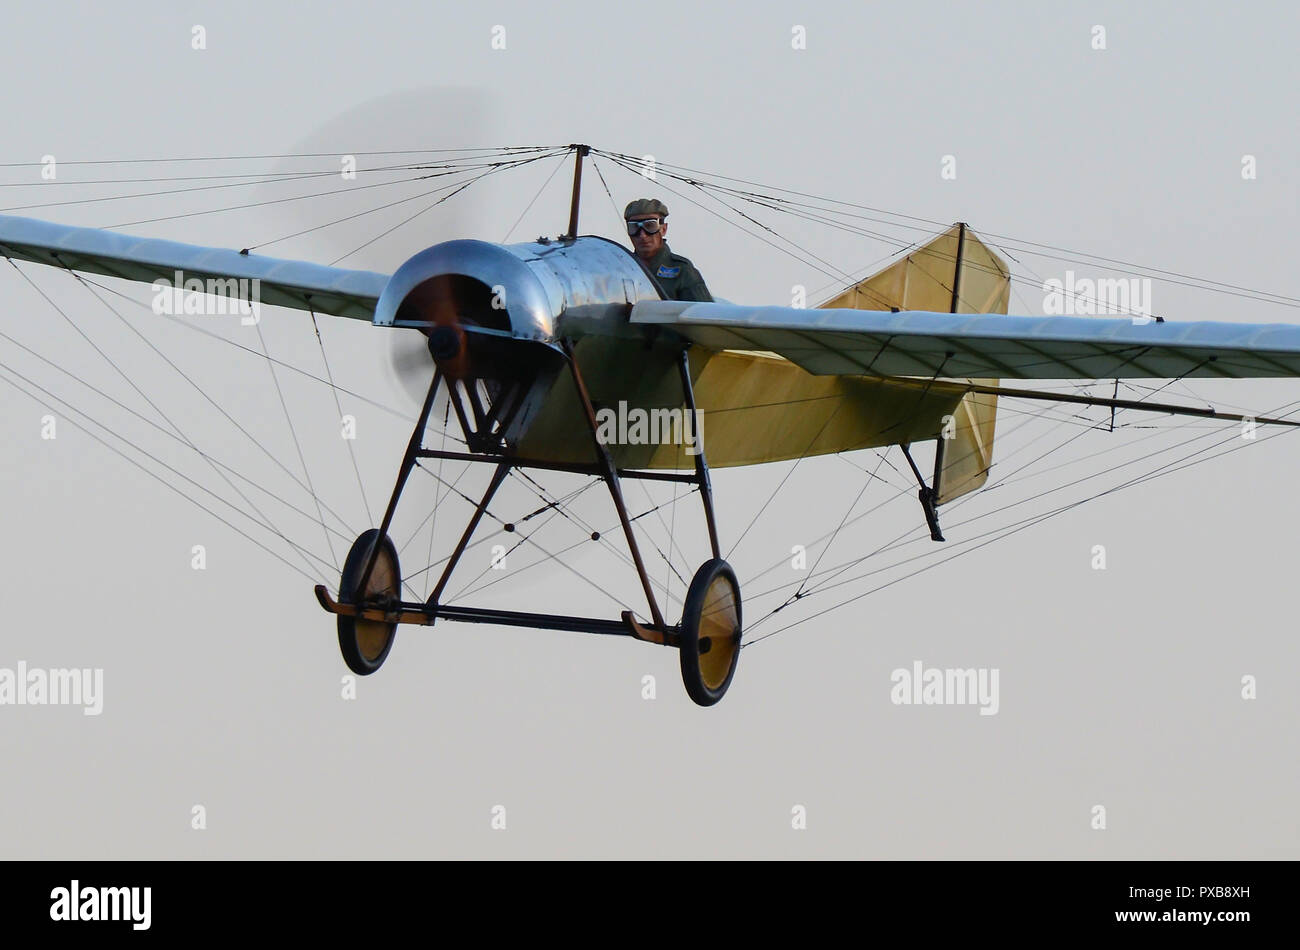 1912 Blackburn Monoplane Type D, the oldest airworthy aircraft of British origin anywhere in the world. Vintage plane from early days of manned flight - Stock Image